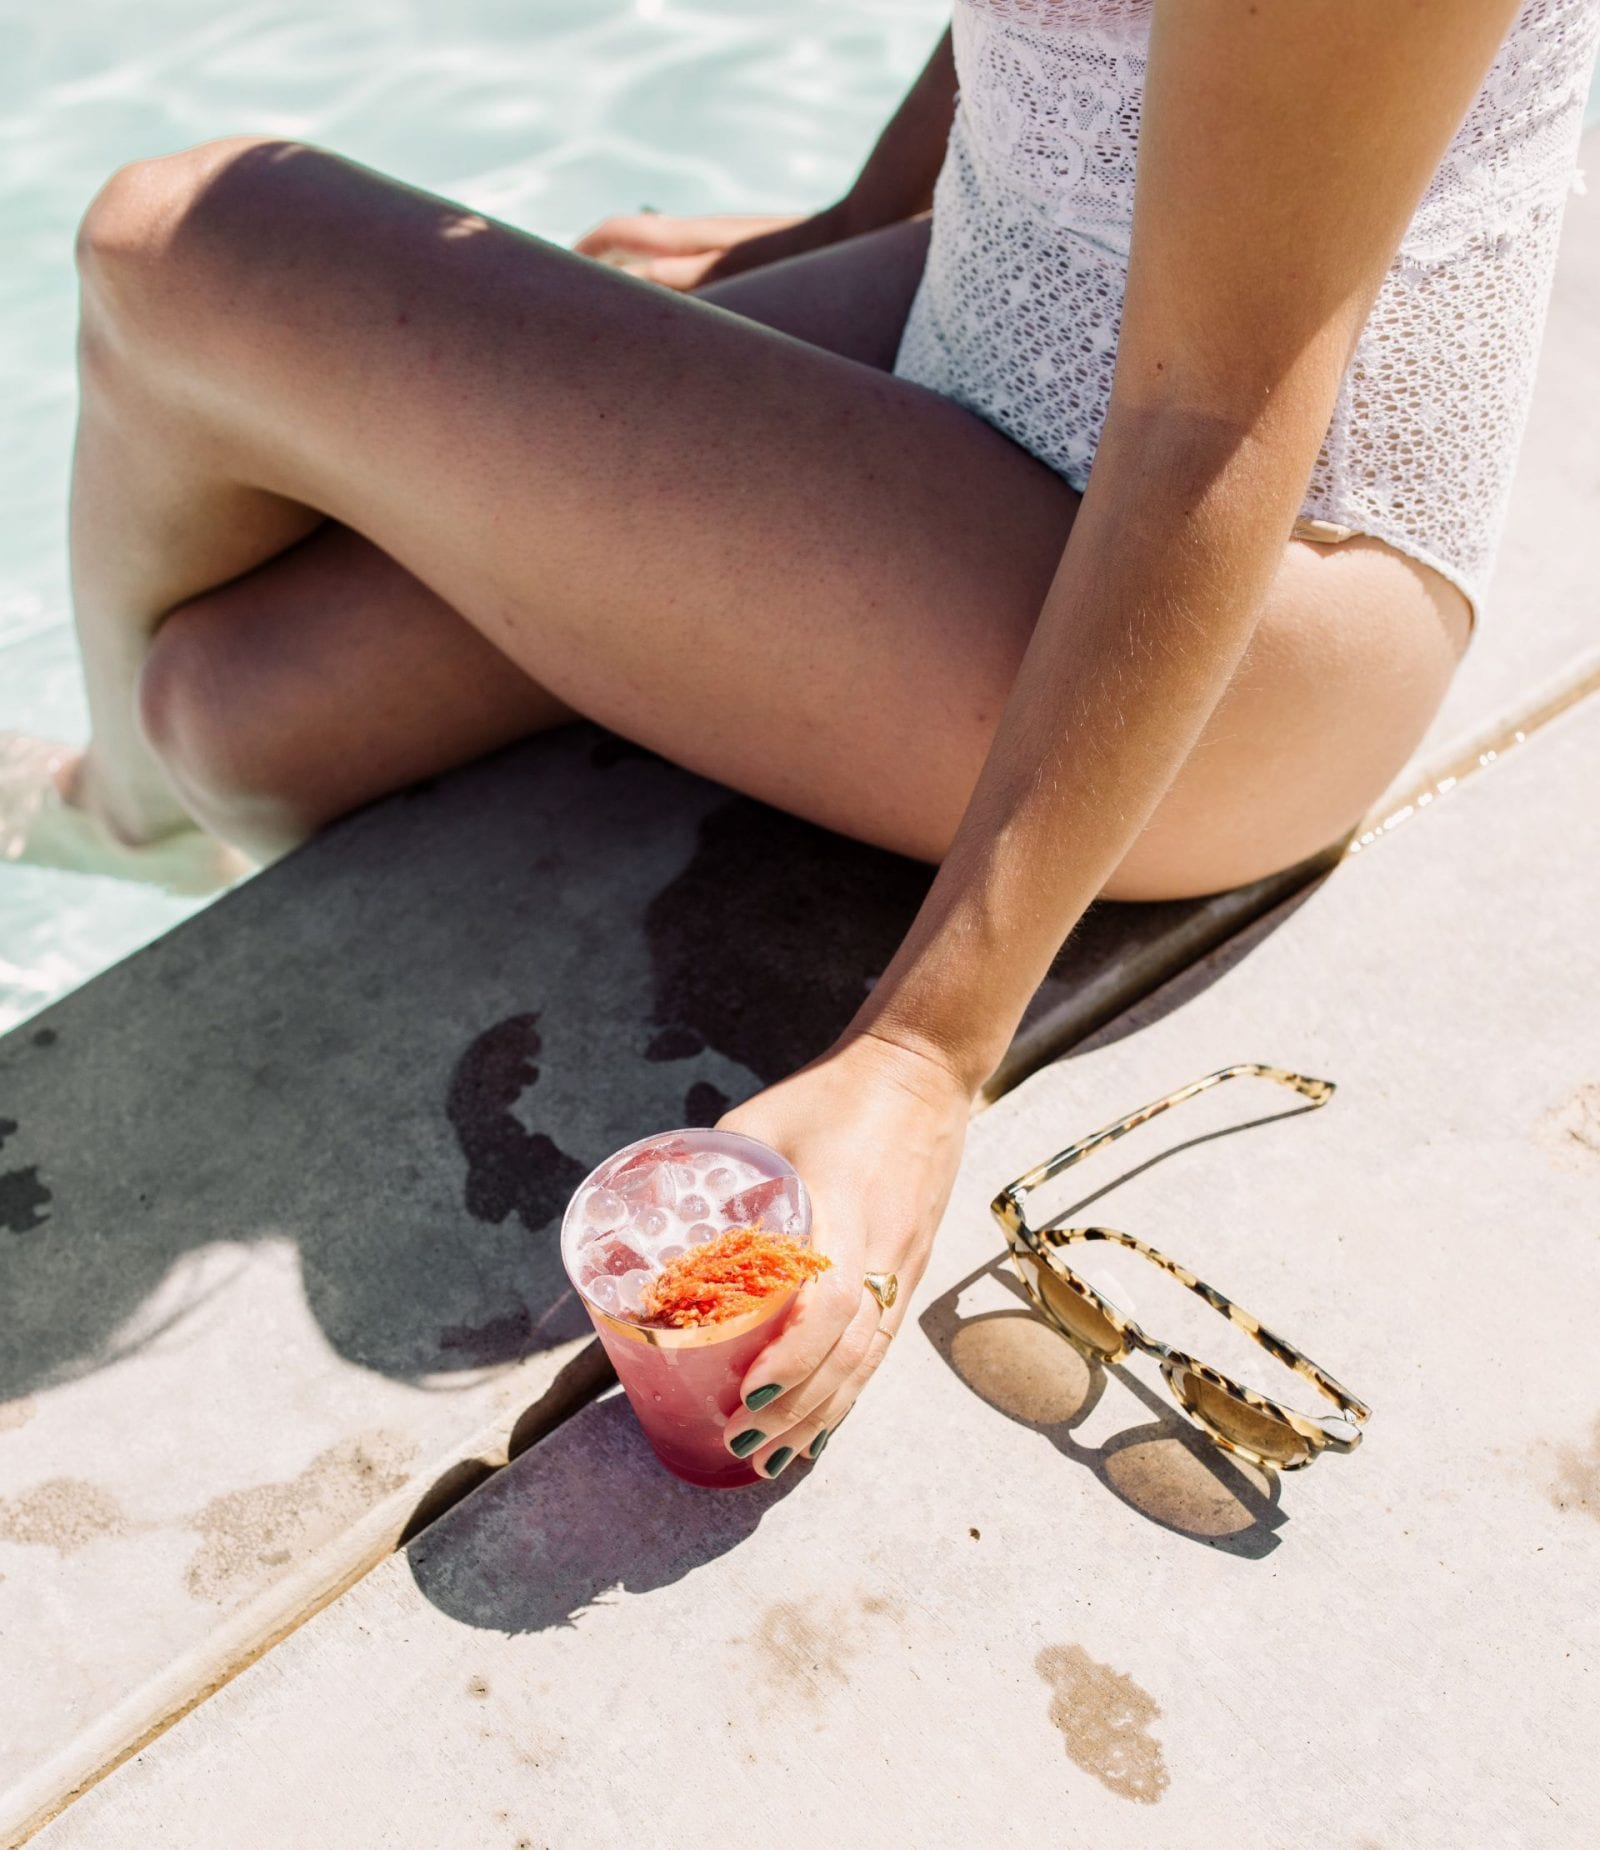 Park Winters Summerland 2019 | Summer Pool Party Inspiration | Fashion Blogger | Swimsuit | Poolside Cocktail | SarahMichiko.com